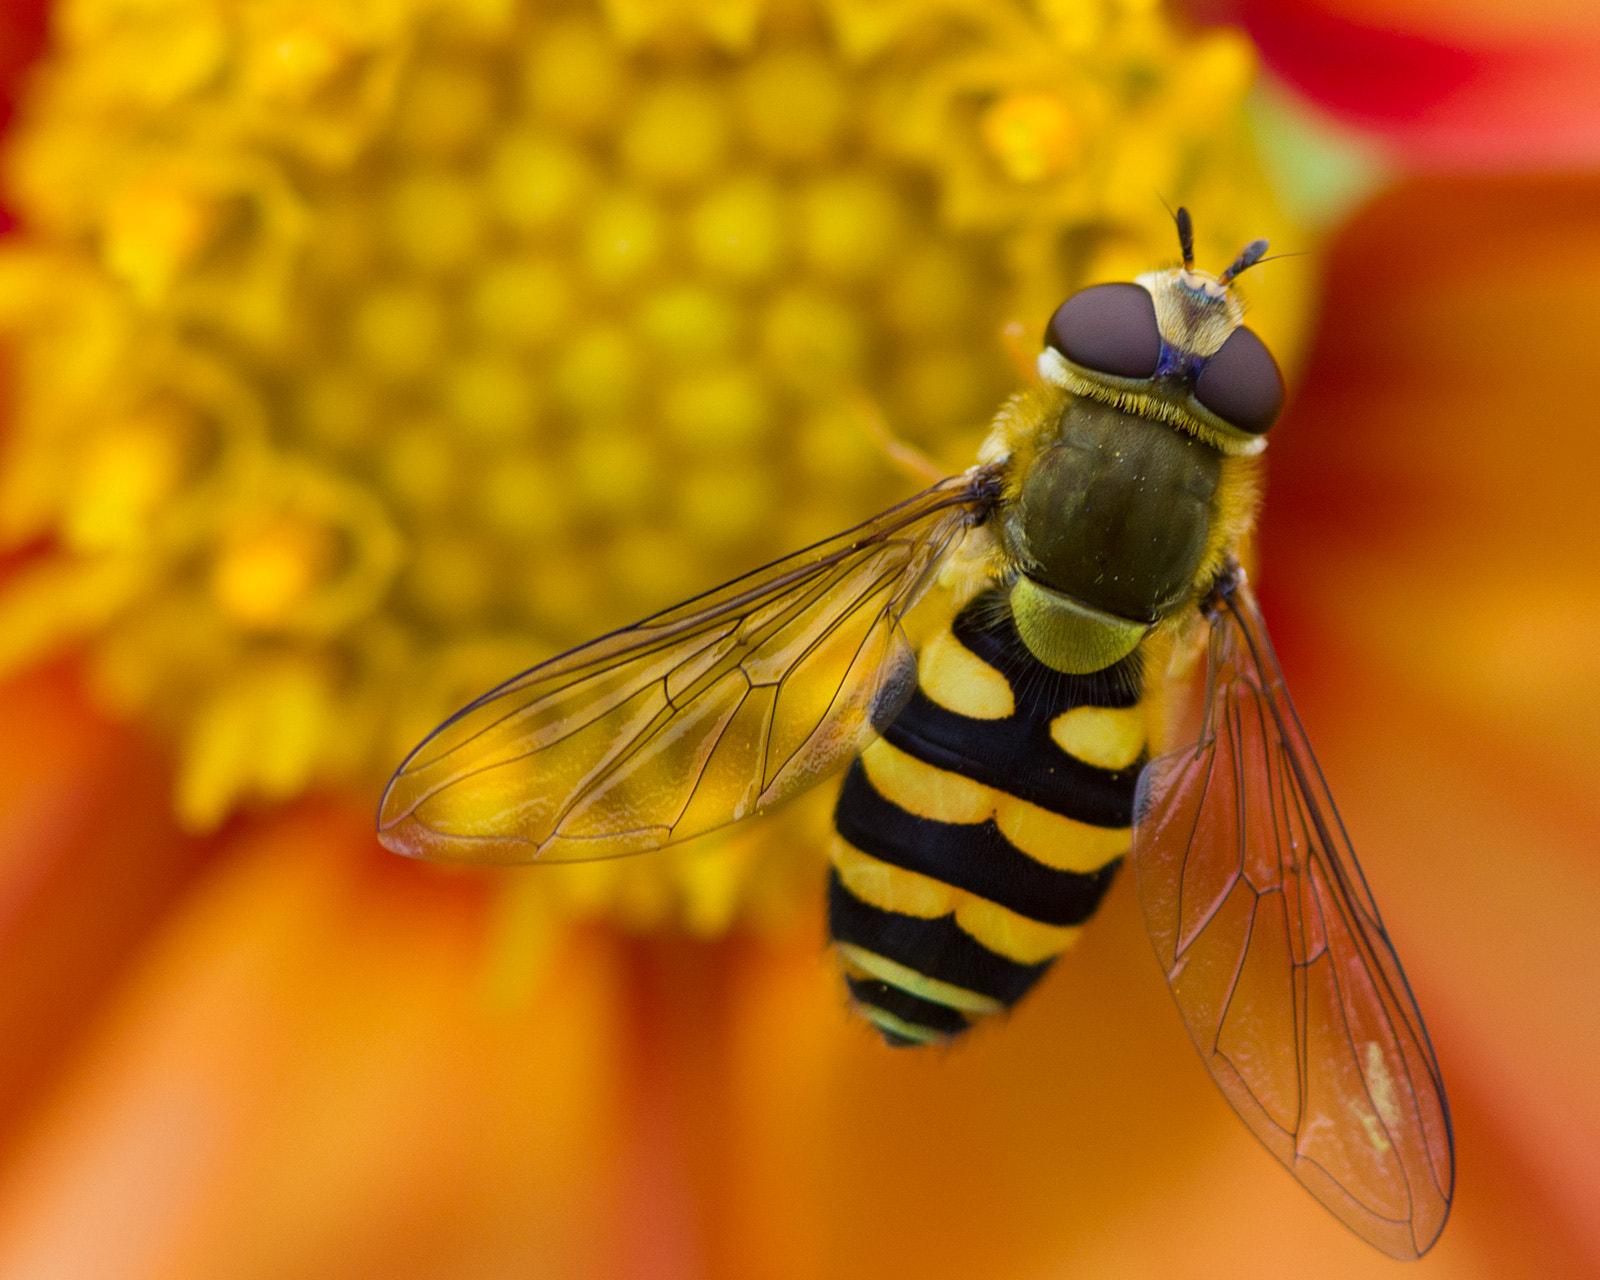 Photograph Hoverfly by Mike Carson on 500px